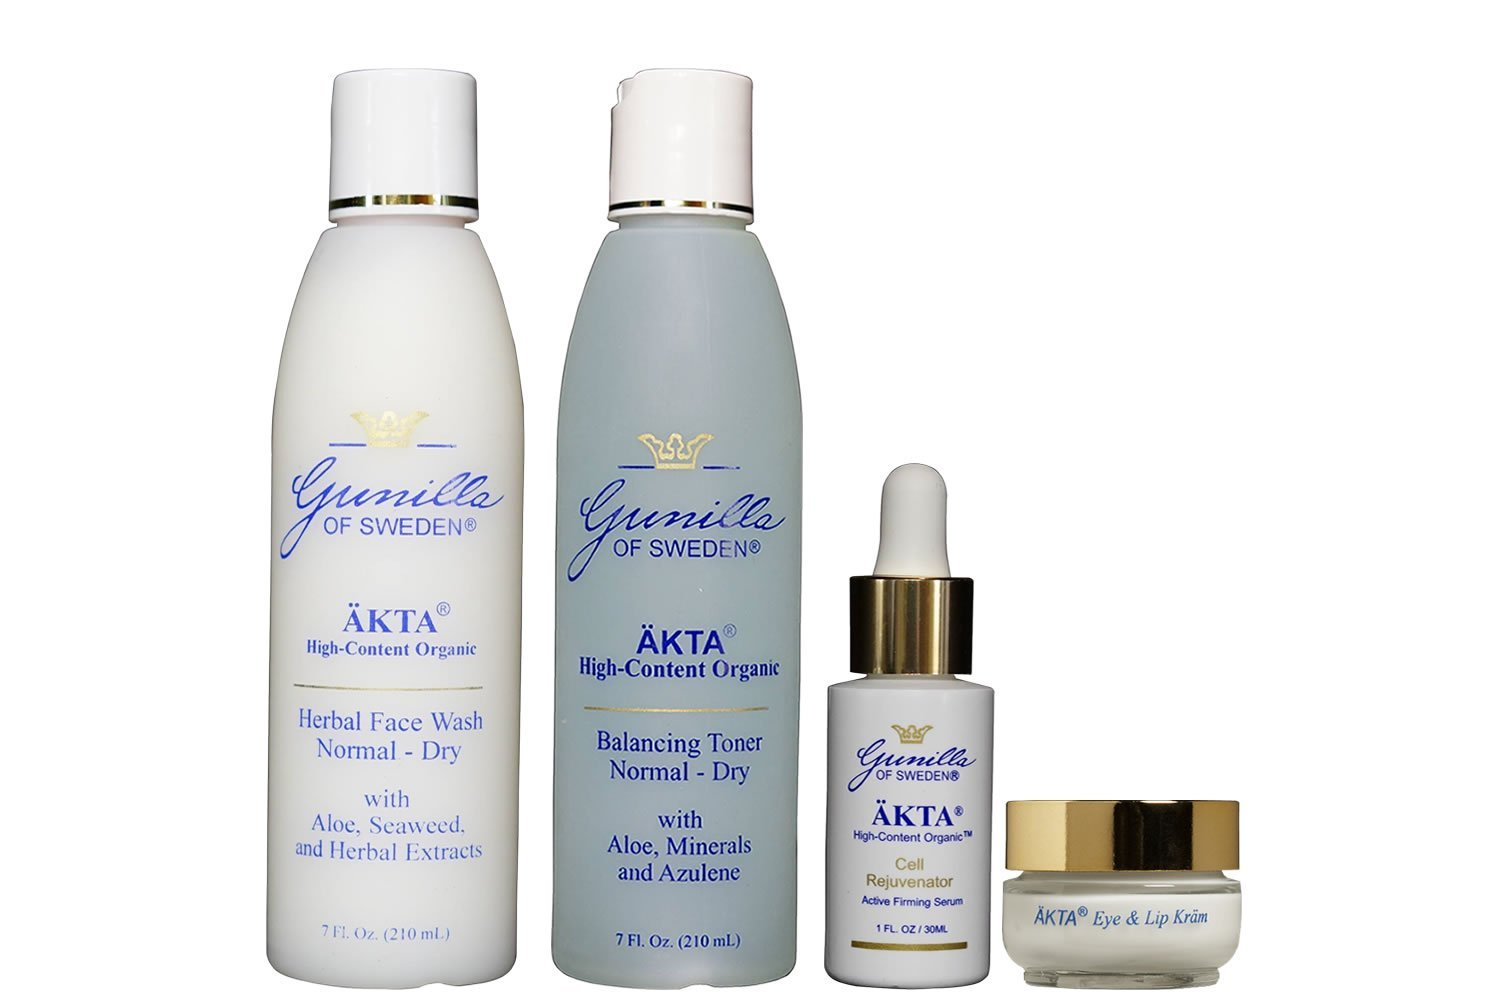 ÄKTA by Gunilla of Sweden Anti-Aging Skin Care System (Mature Skin): Based on Nutrient Rich Organic Aloe- Organic Botanical Extracts Provide Anti-Aging Benefits- Alcohol and Oil-Free